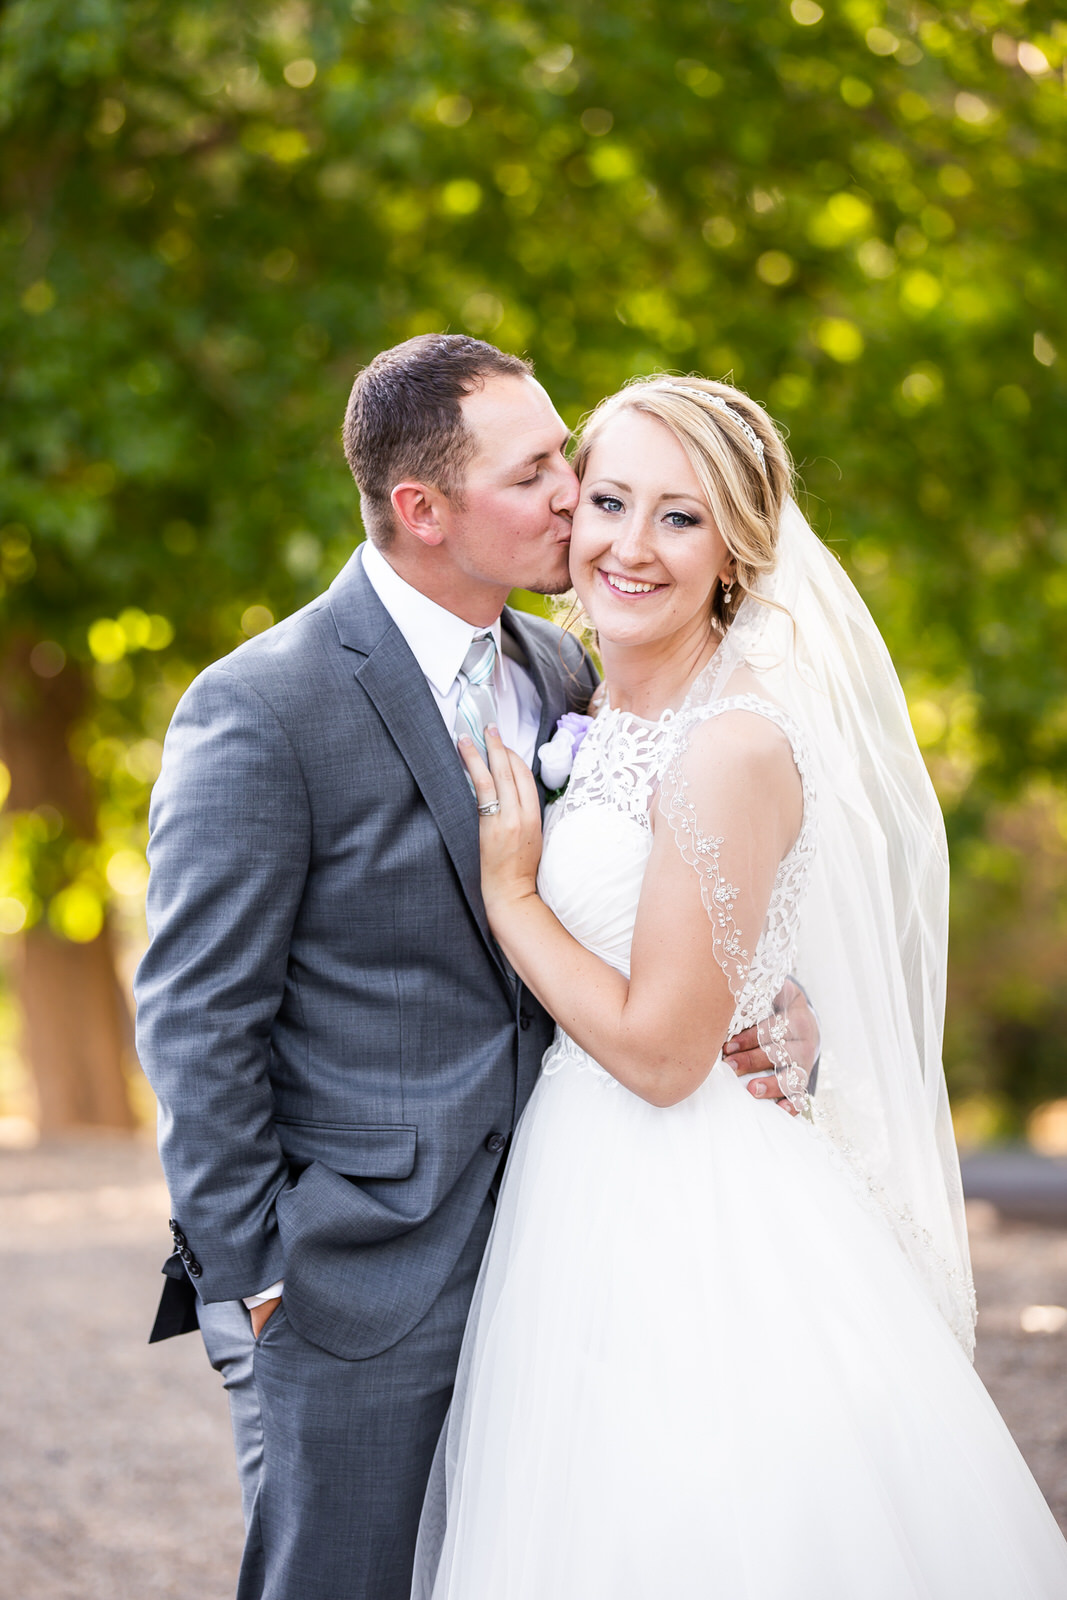 Grand Junction Wedding Photographer 107.JPG